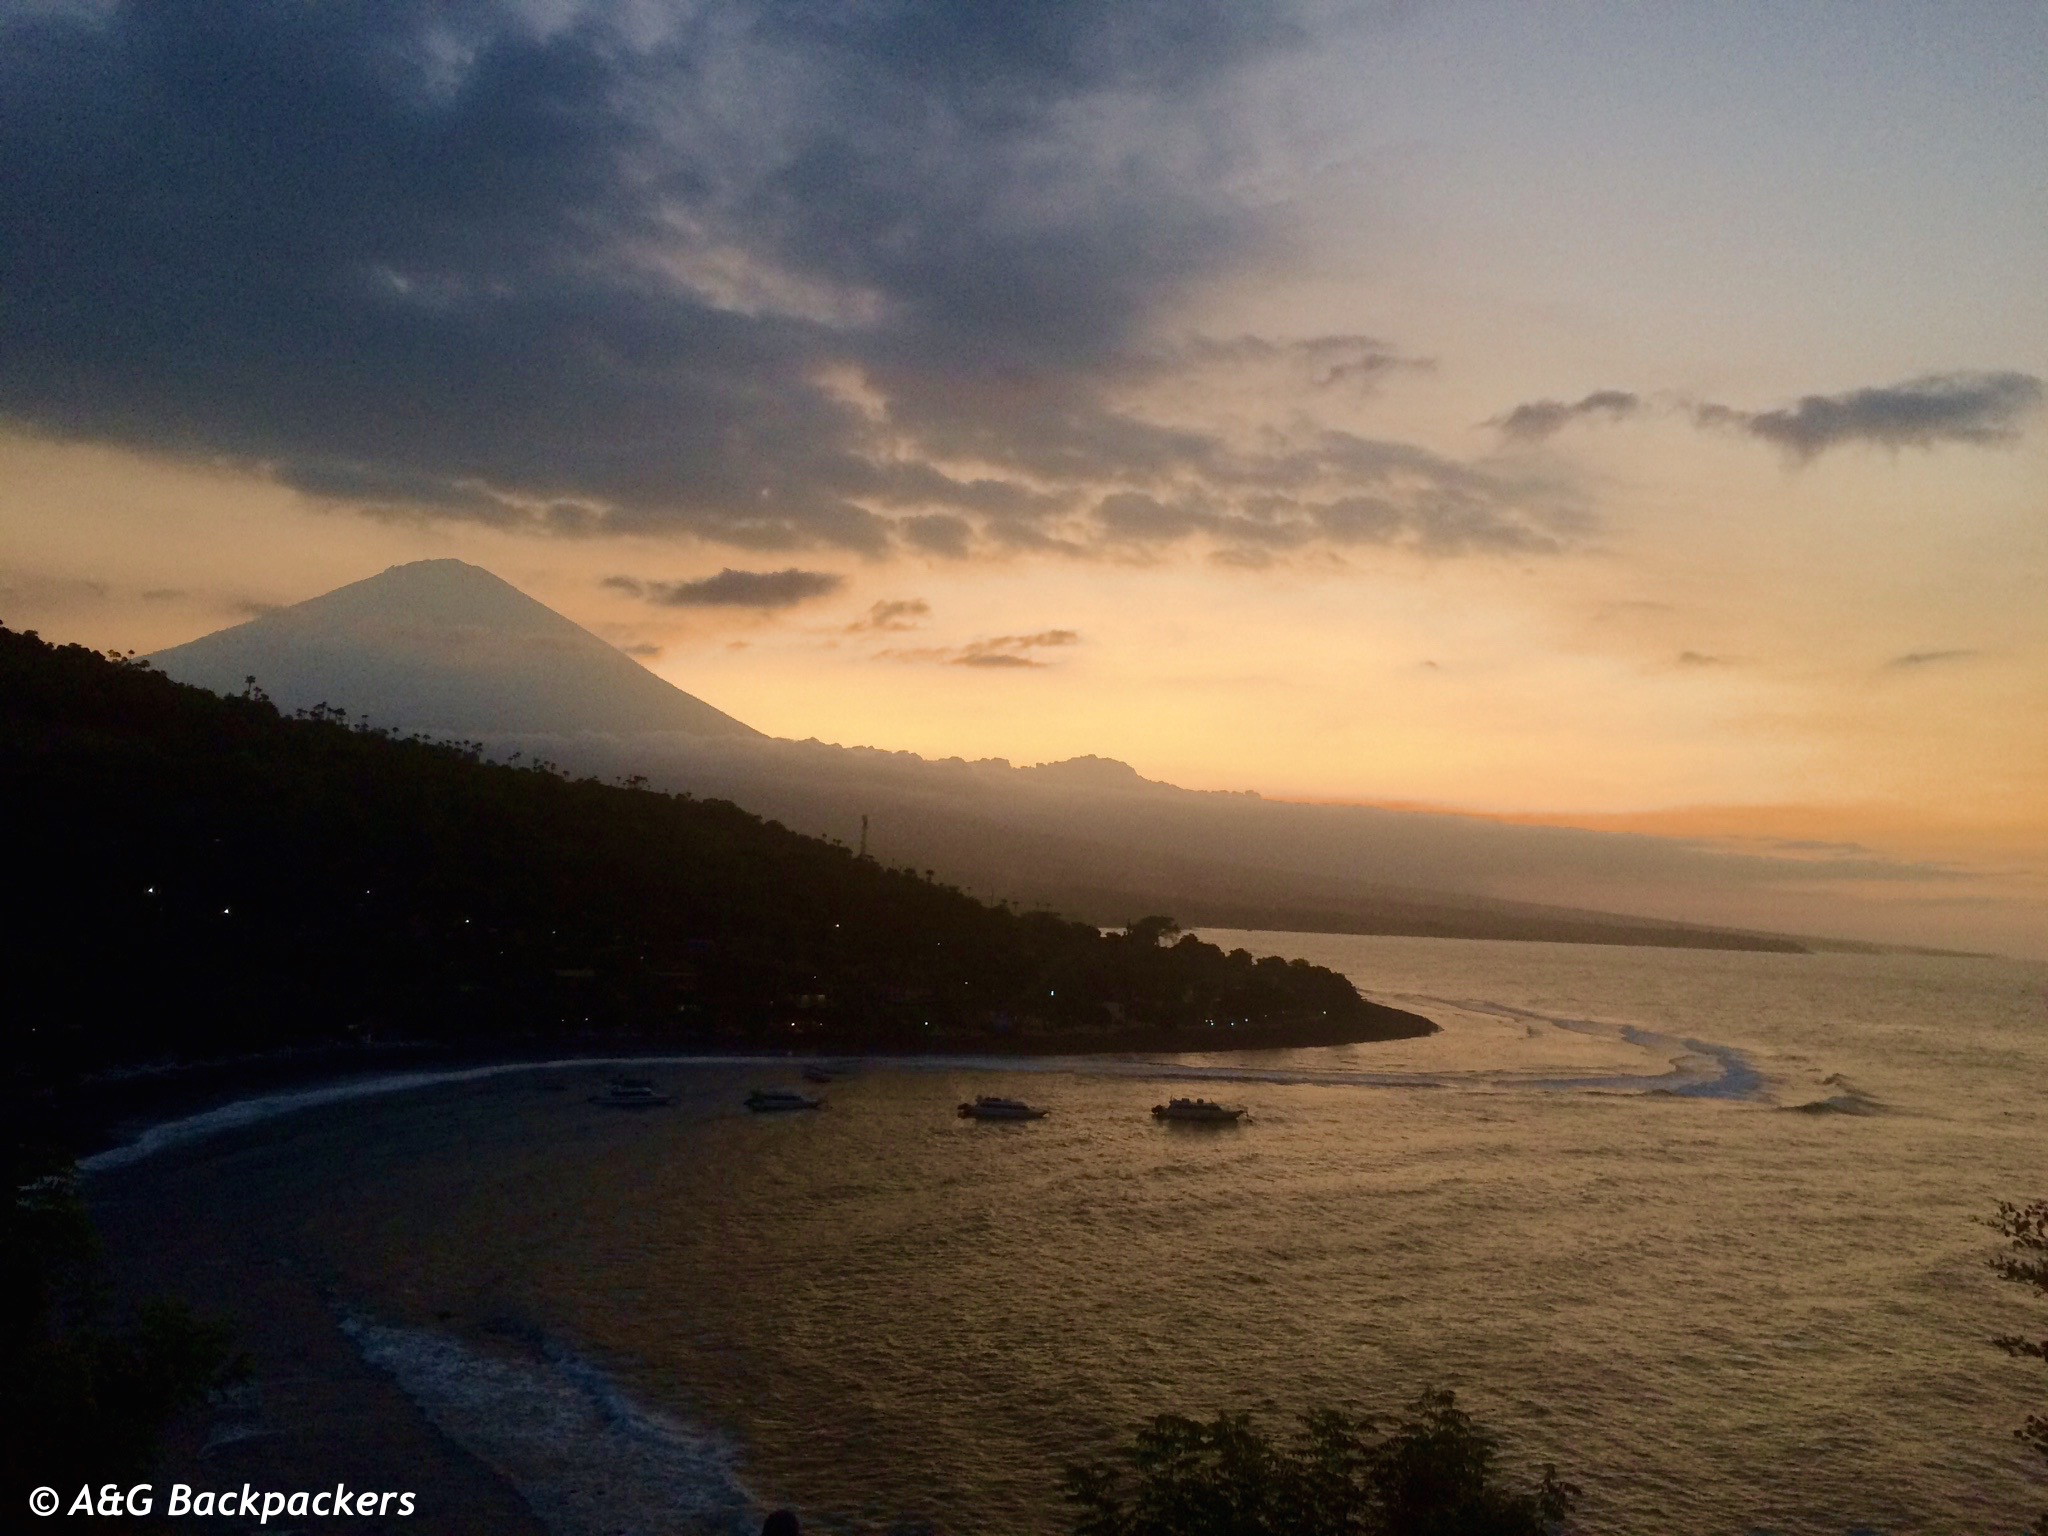 Amed Bali: Our little Heaven